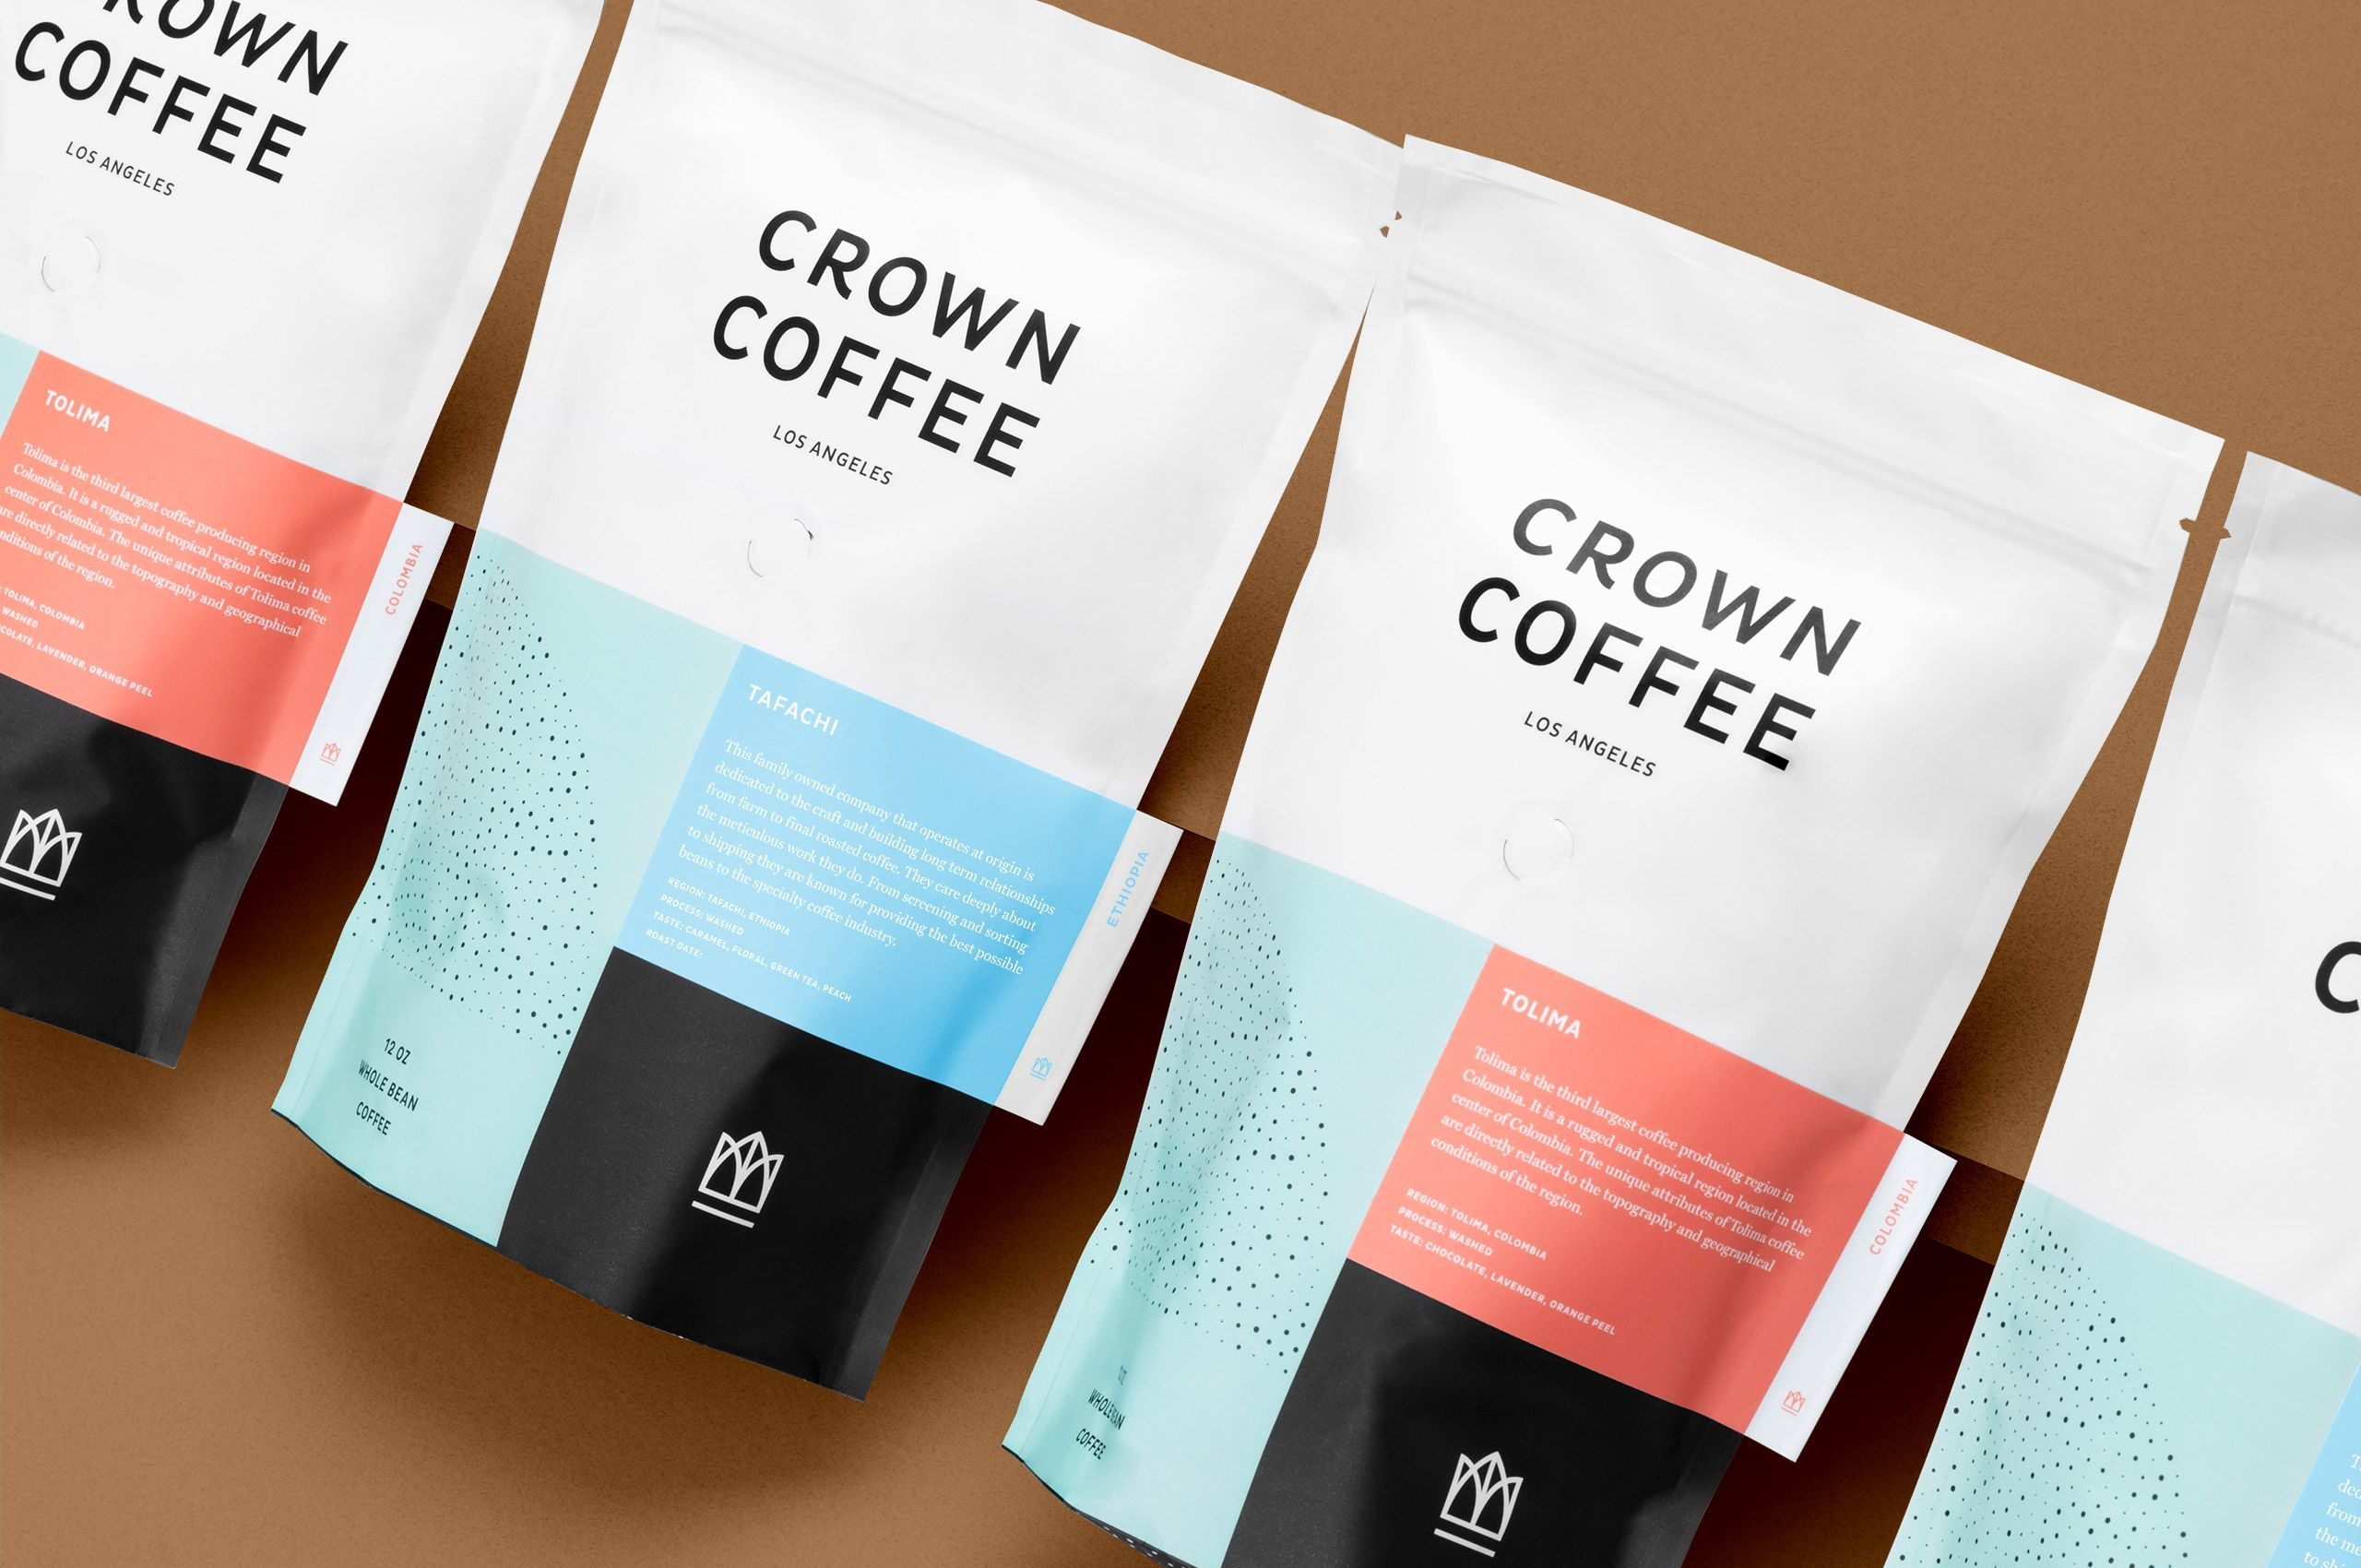 Crown Started With A Simple Belief That Everyone Deserves A Great Cup Of Coffee Coffee Branding Coffee Outfit Coffee